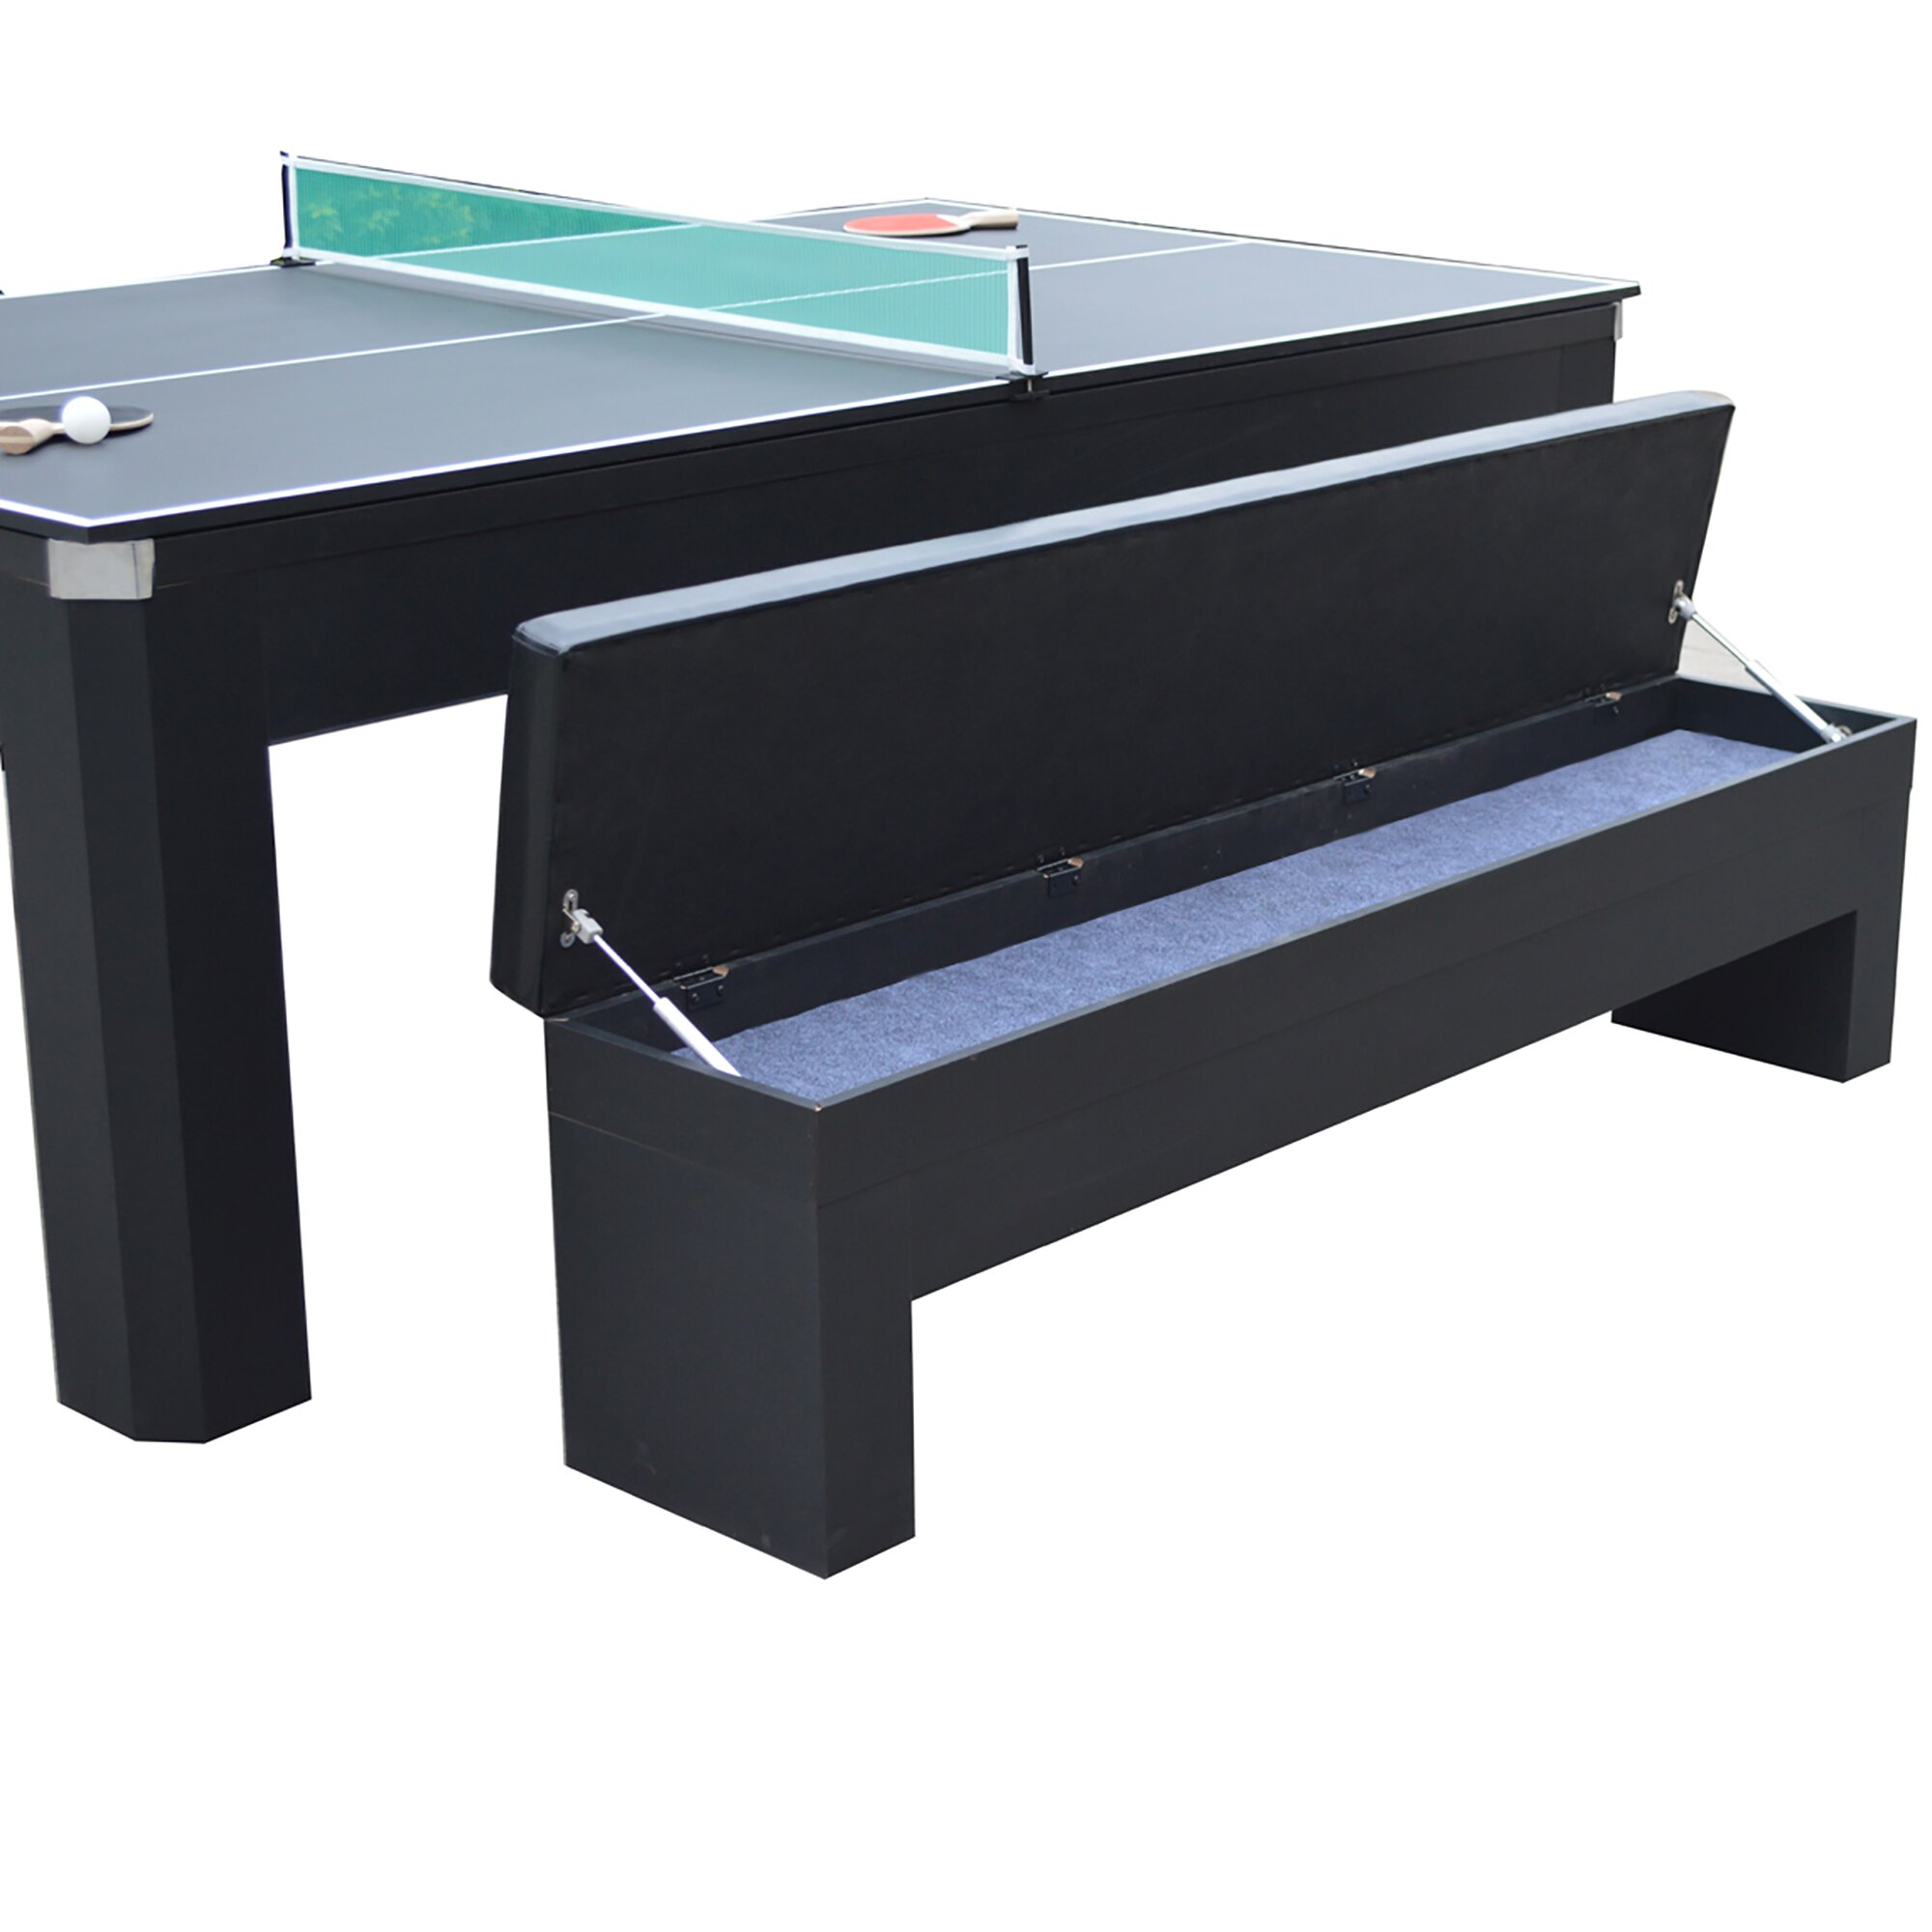 Hathaway games park avenue 10 piece 7 39 pool table combo for 10 pool table